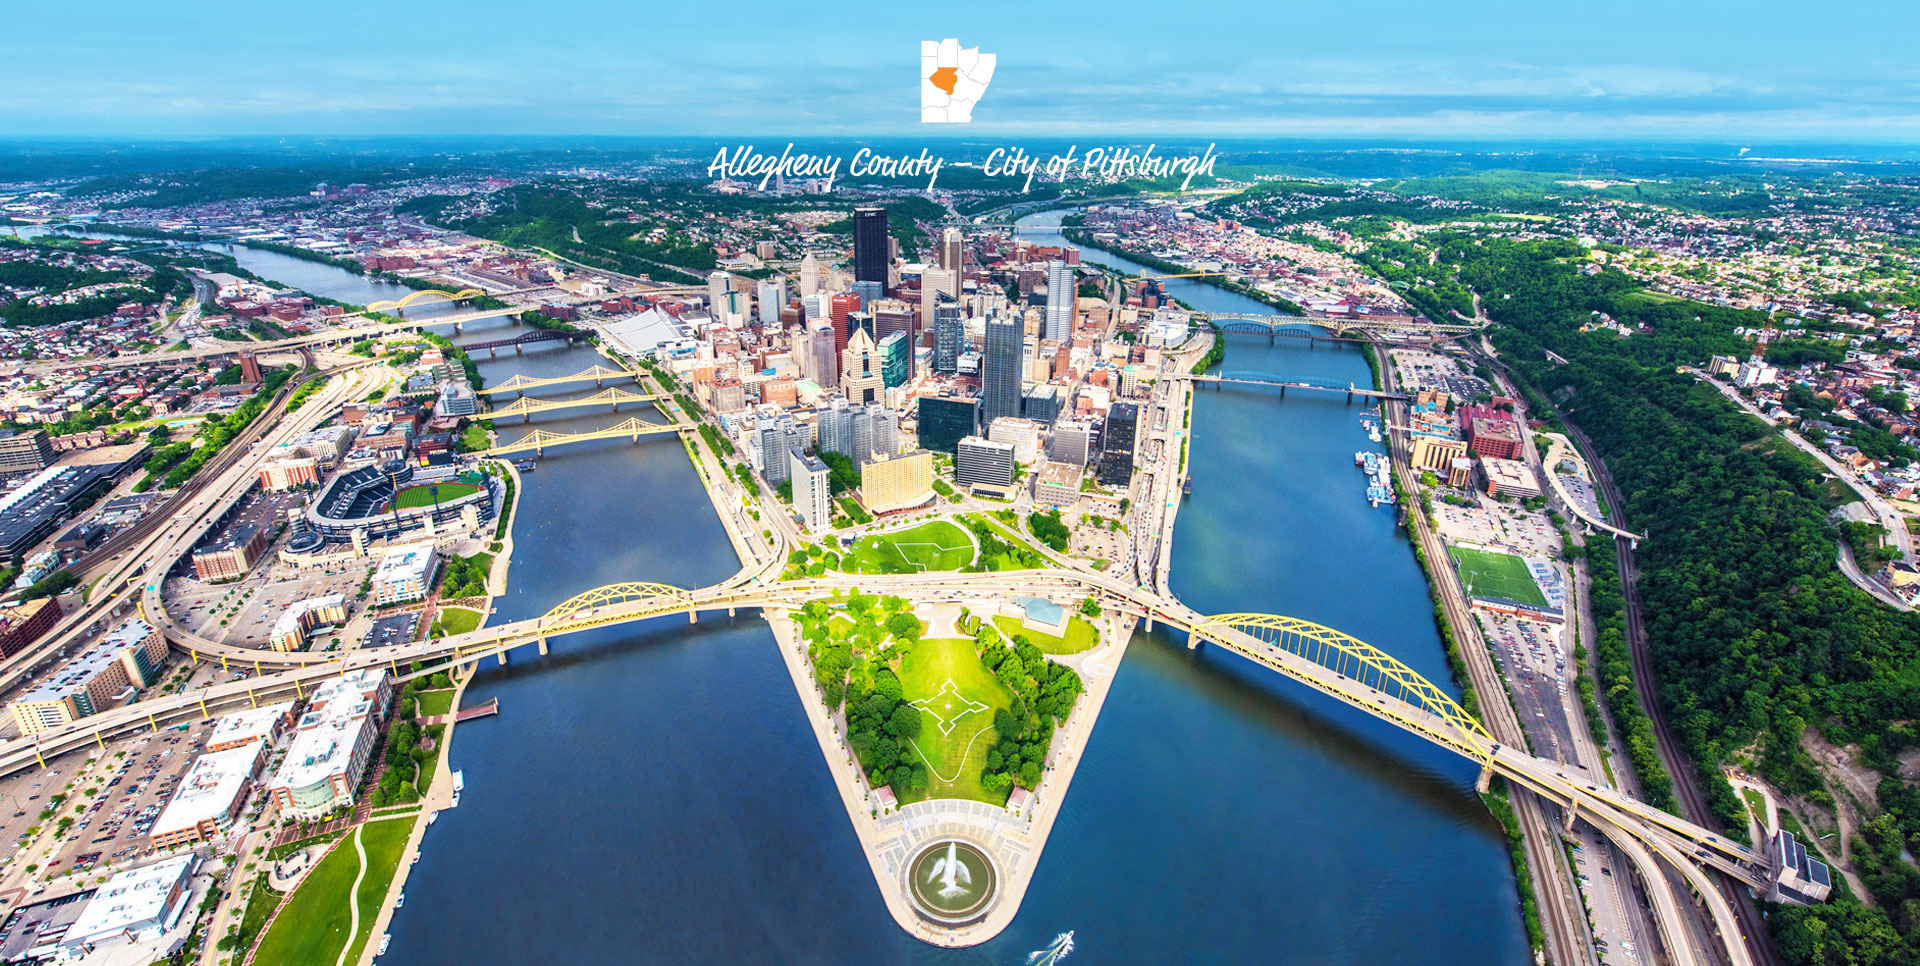 Allegheny Conference – City of Pittsburgh